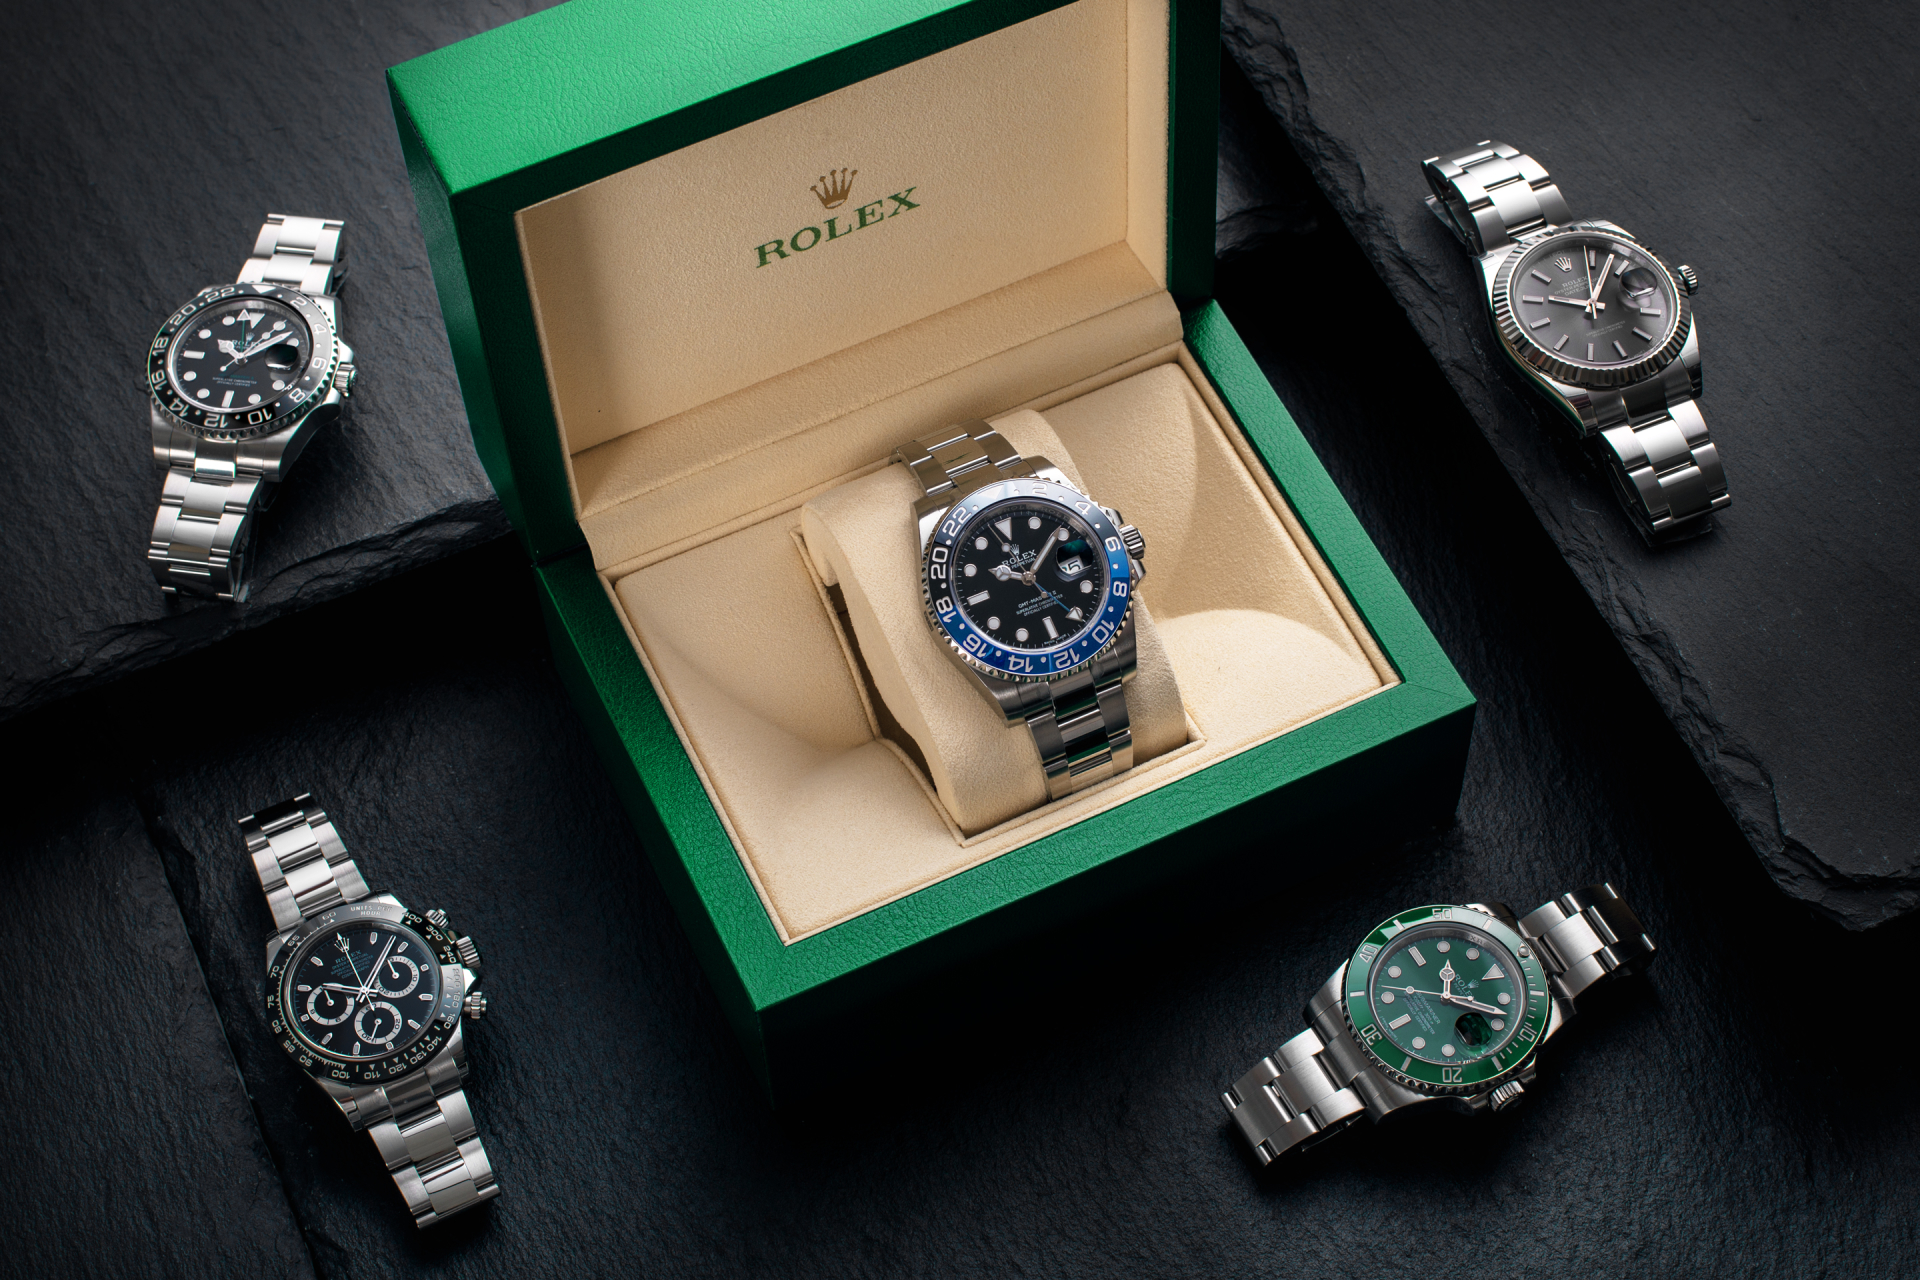 Rolex rumours 2021: What can you expect?